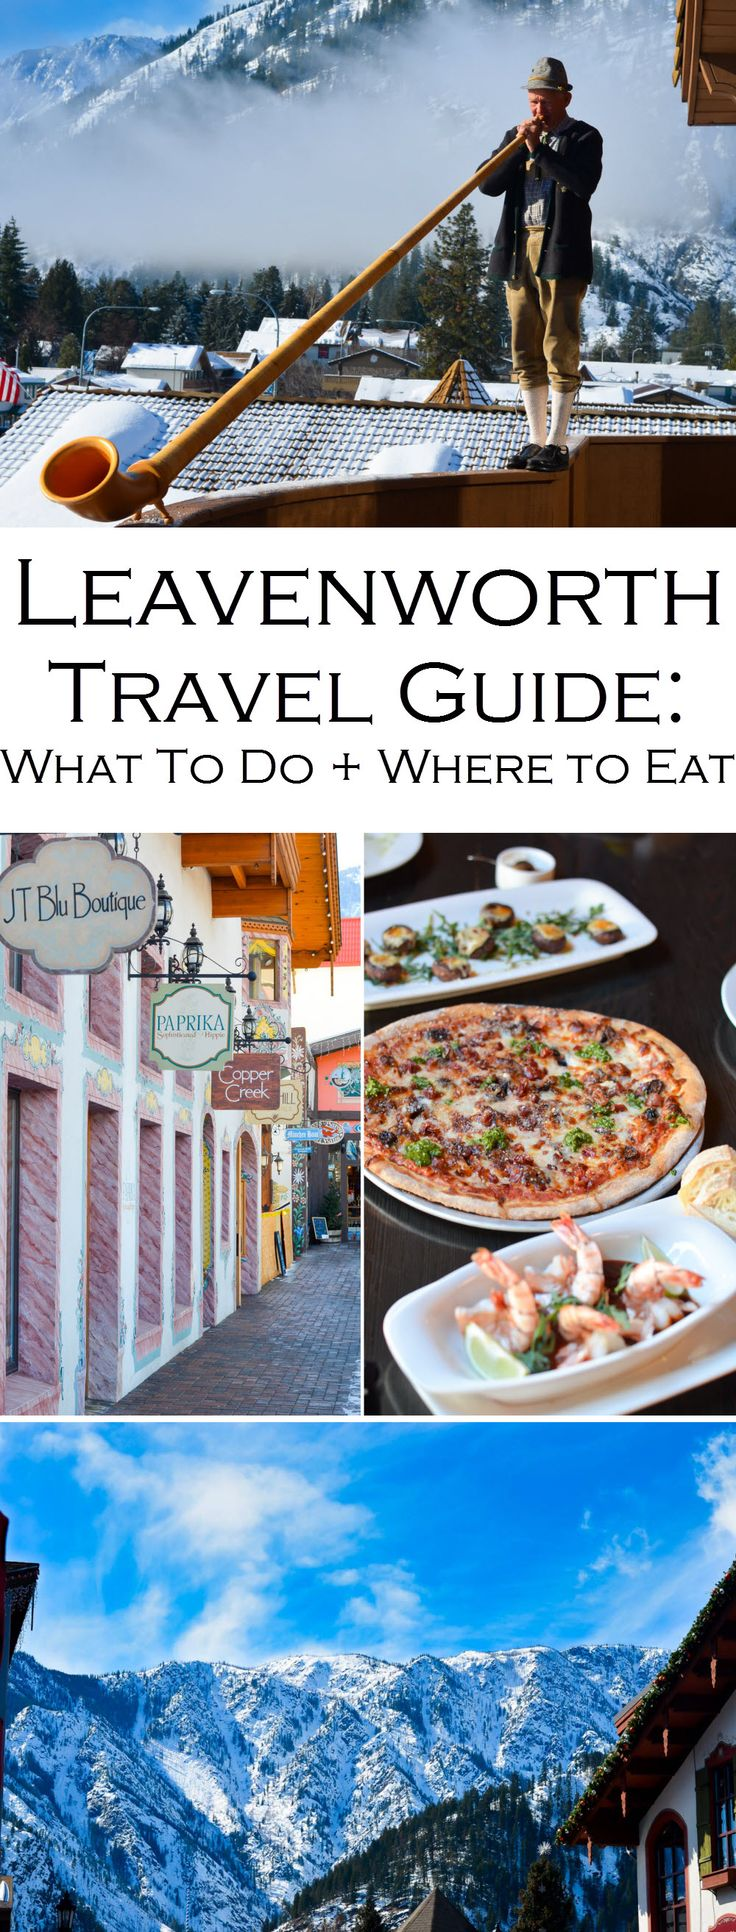 Leavenworth, Washington is a year round, must-visit destination. See all the fun and food and get the insider scoop on this cue Bavarian town!